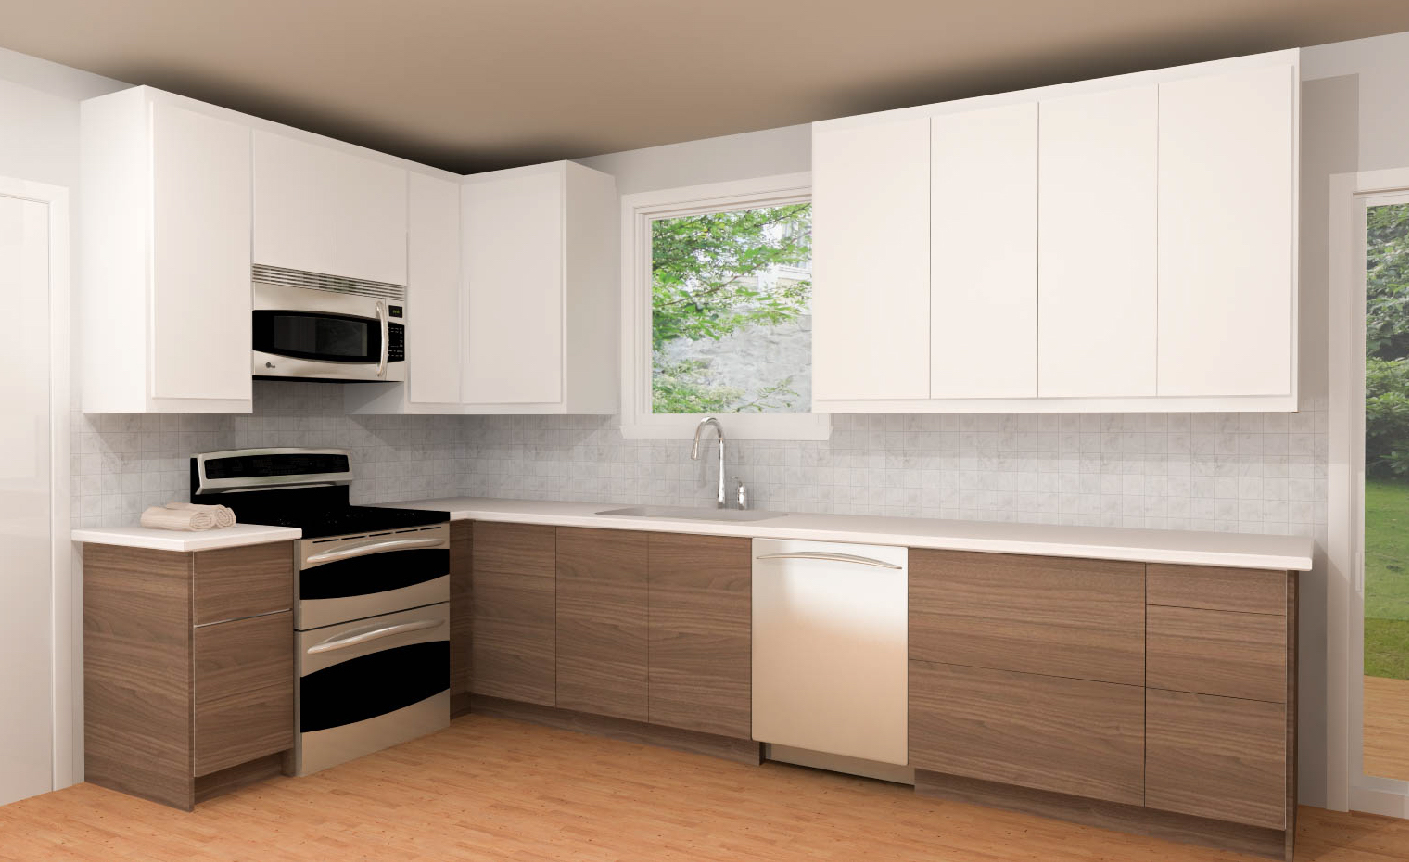 Three IKEA kitchens cabinet designs under 5000 IKEA